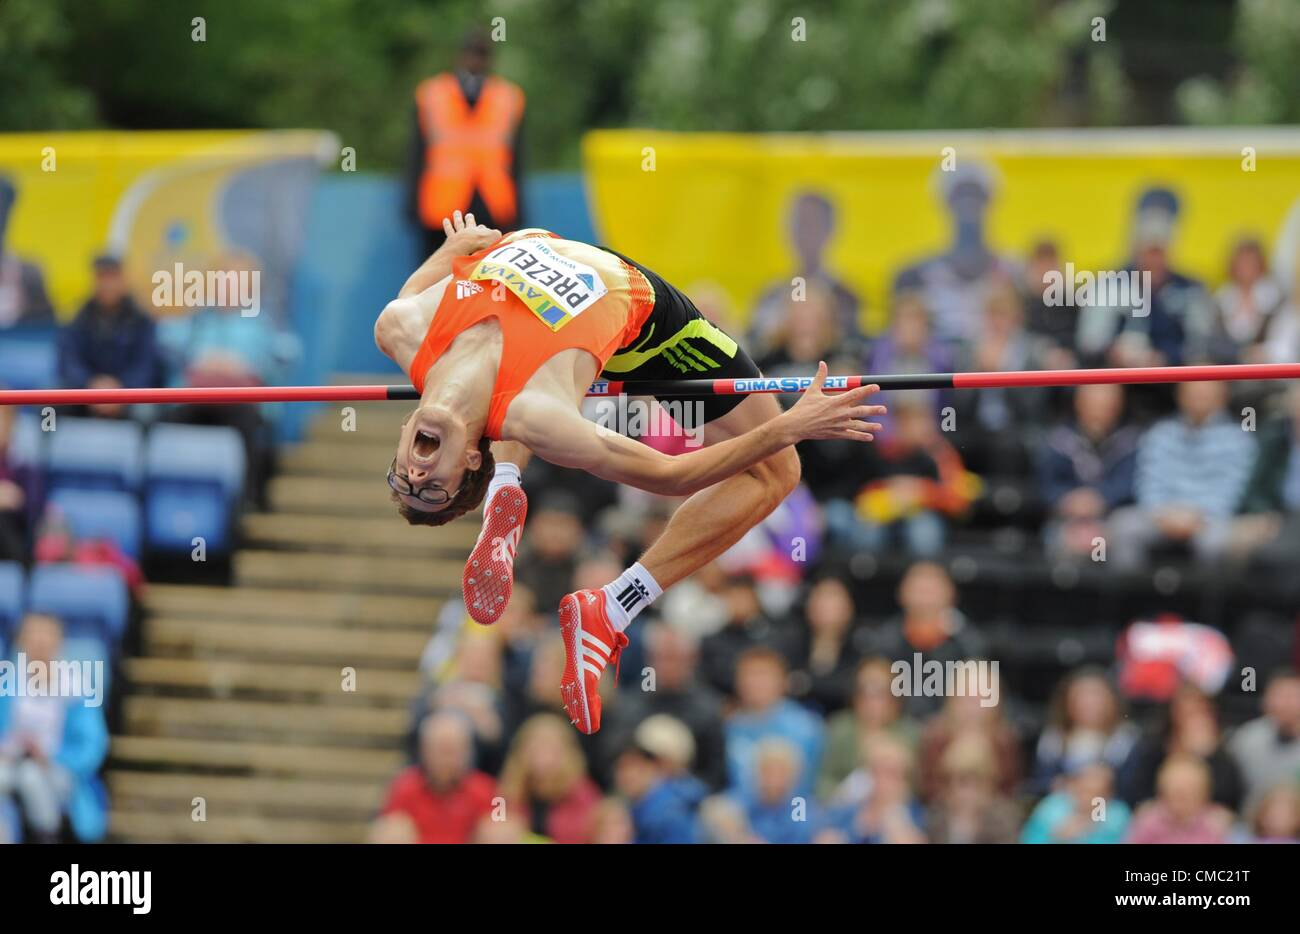 14.07.2012 London ENGLAND Mens High Jump, Rozle Prezelj in action during the Aviva Grand Prix at the Crystal Palace - Stock Image